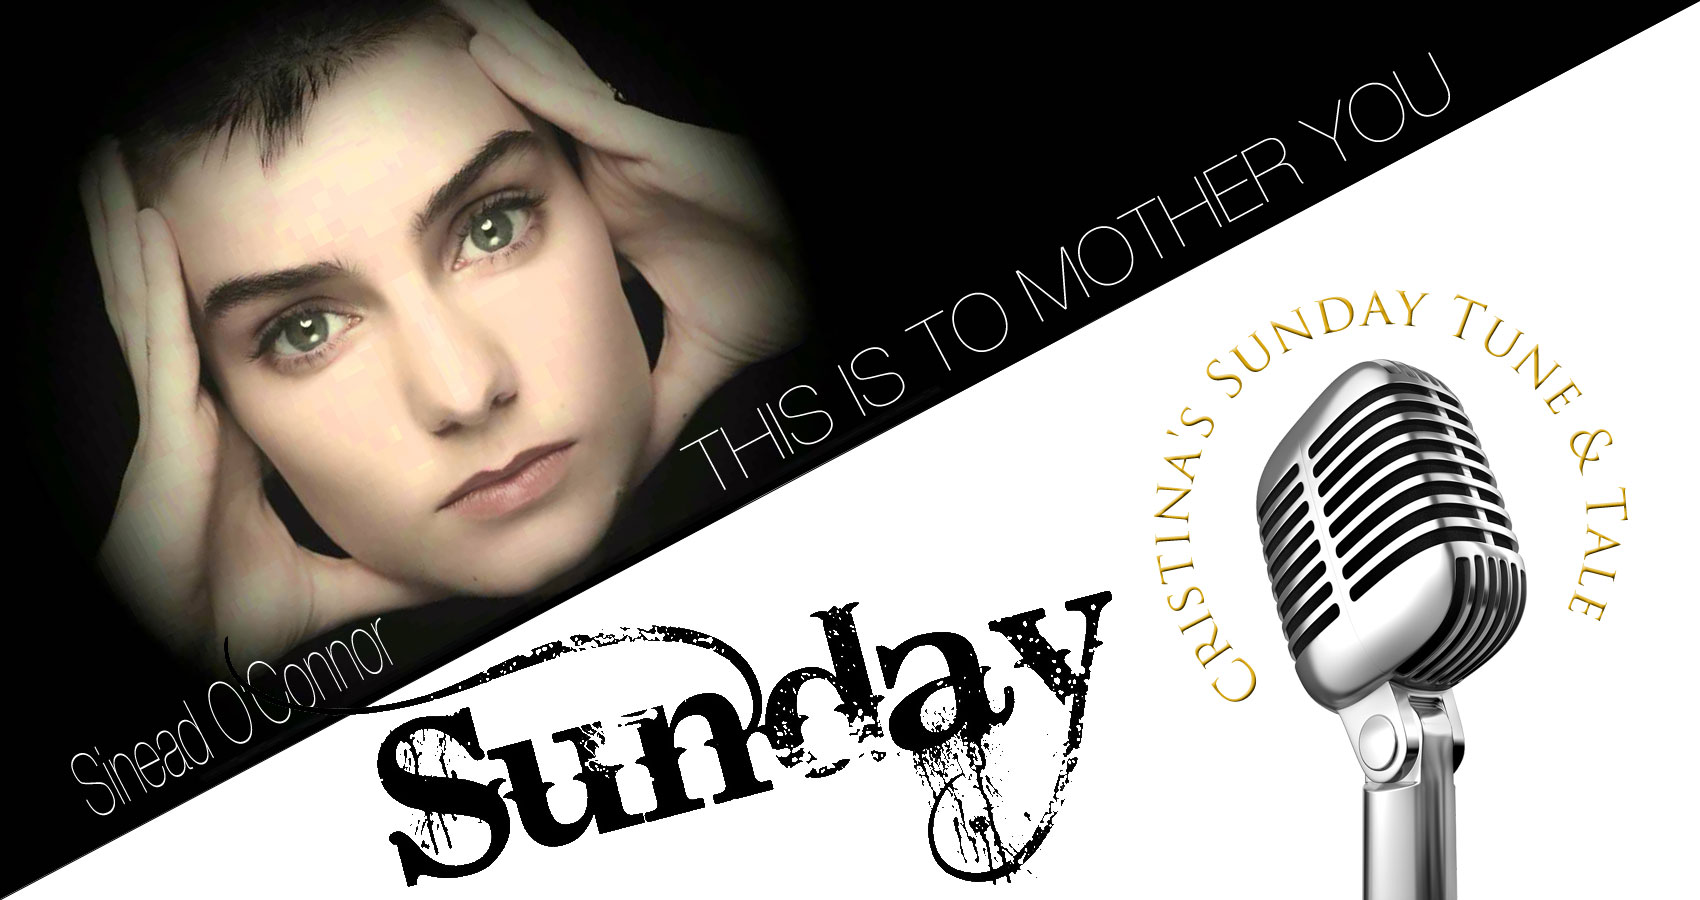 Cristina's Sunday Tune & Tale - 'This Is To Mother You' by Sinead O'Connor by Cristina Munoz at Spillwords.com